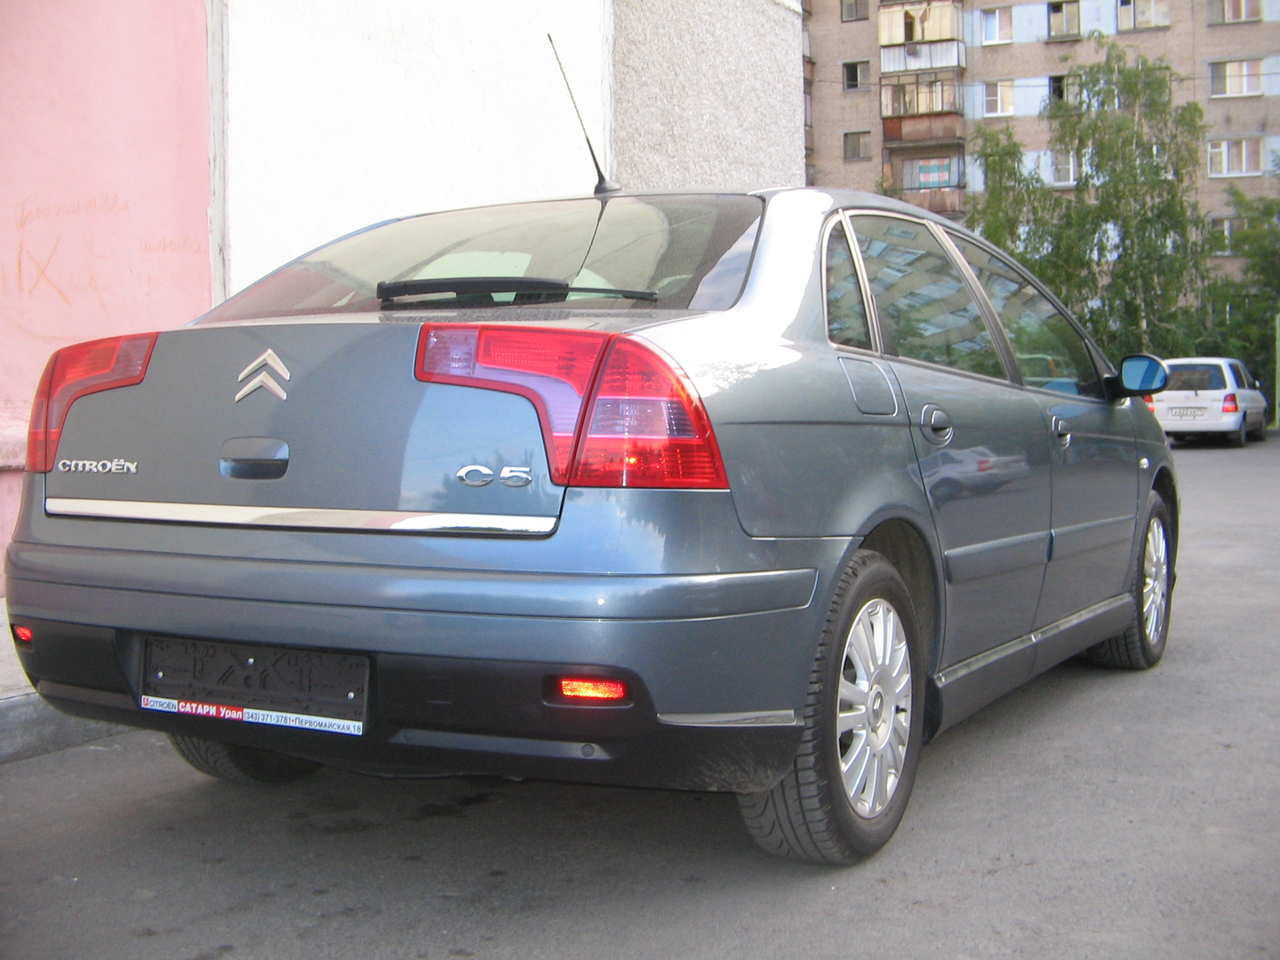 2006 citroen c5 for sale 2000cc gasoline ff manual for sale. Black Bedroom Furniture Sets. Home Design Ideas